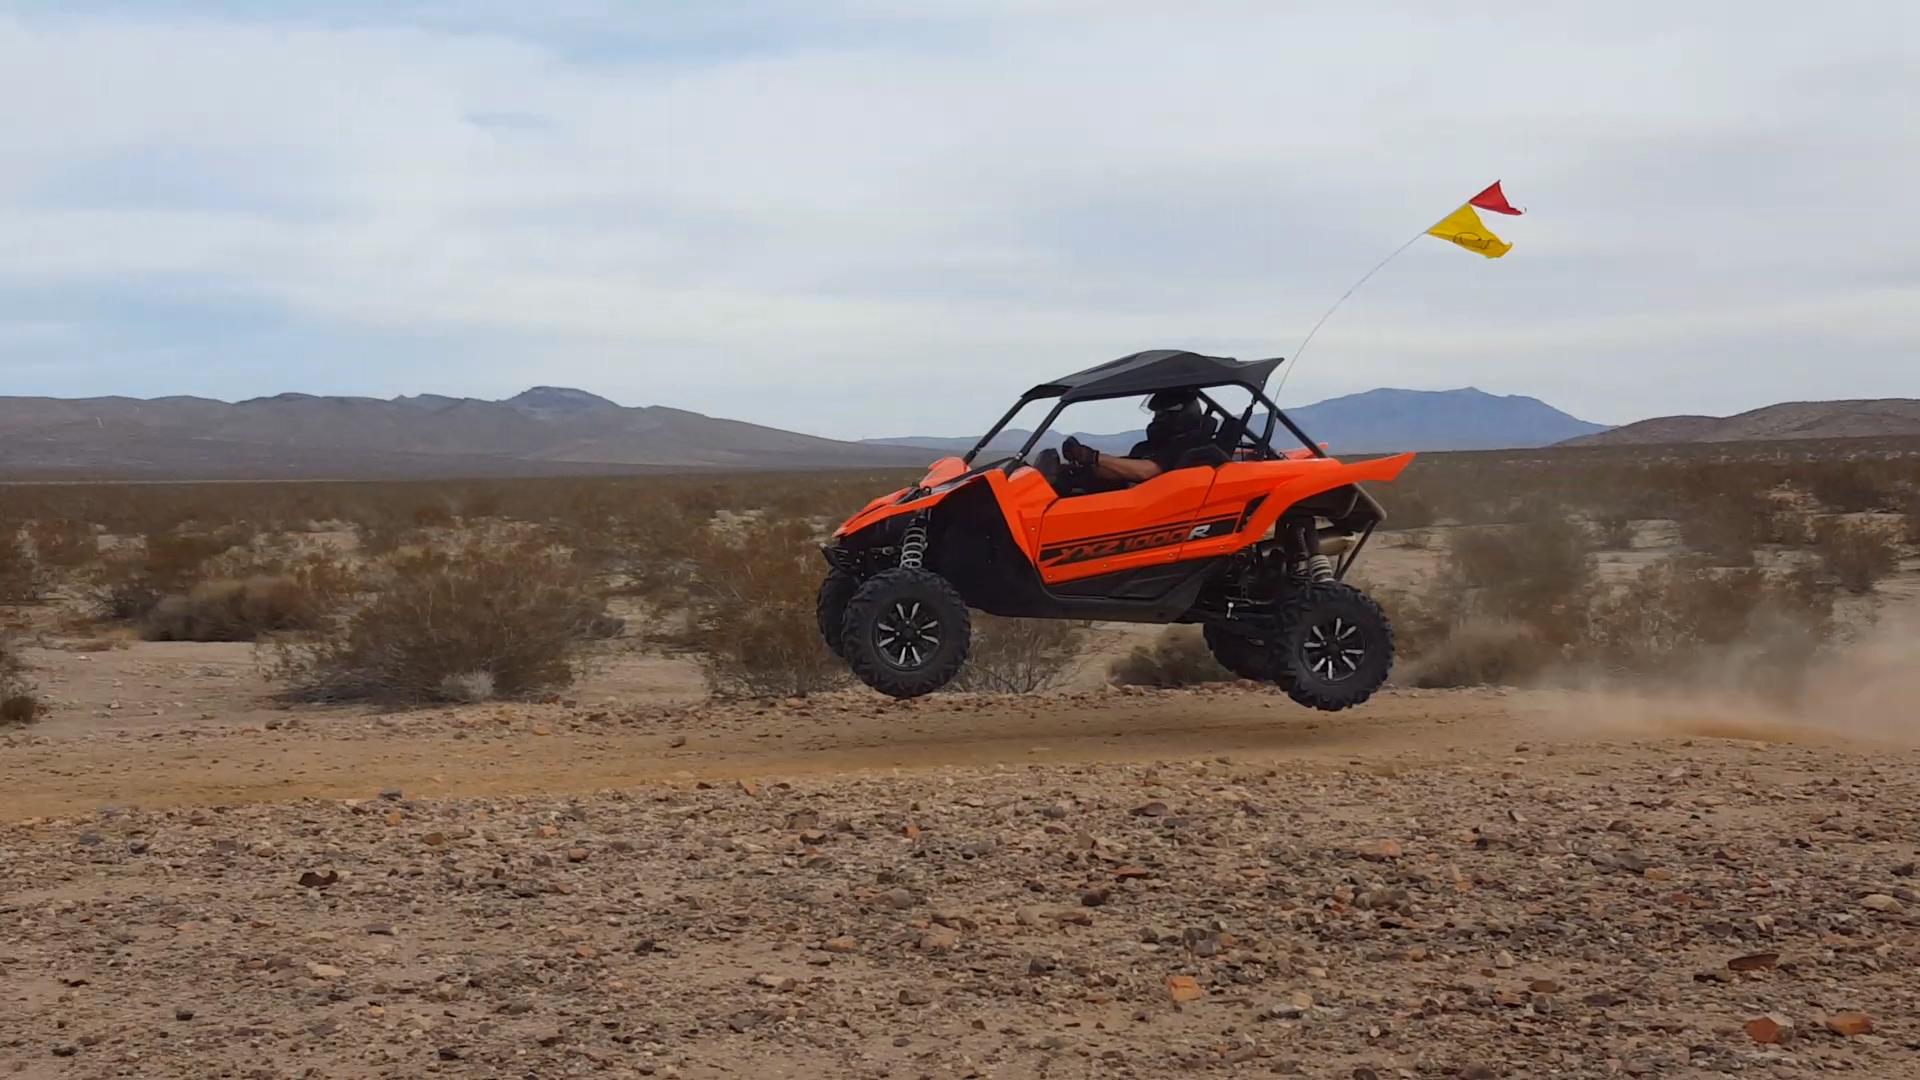 Why is everyone afraid of pics & vids on here ?????????????-yxz-jump-2.jpg